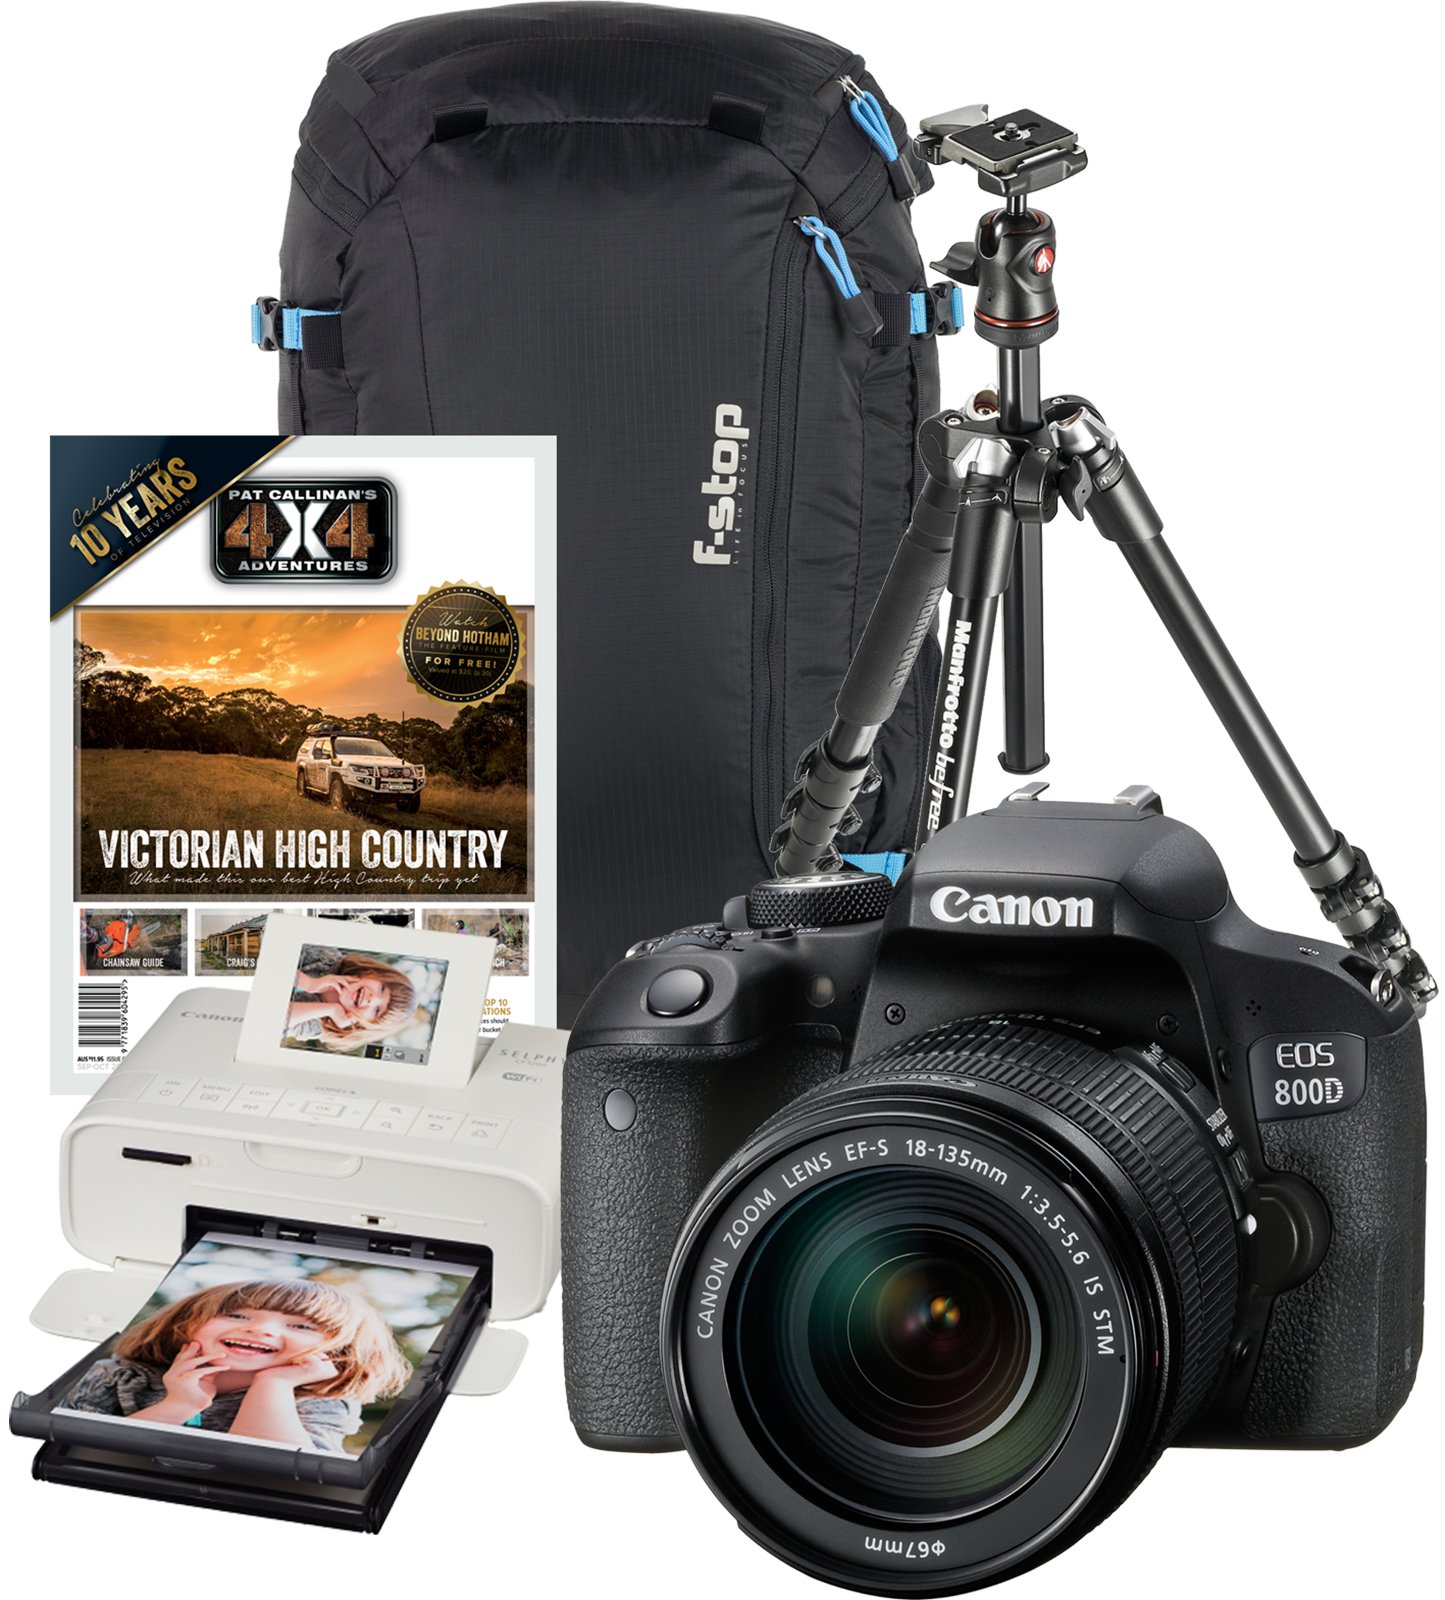 Pat Callinan Photography Packs – Your next adventure is waiting